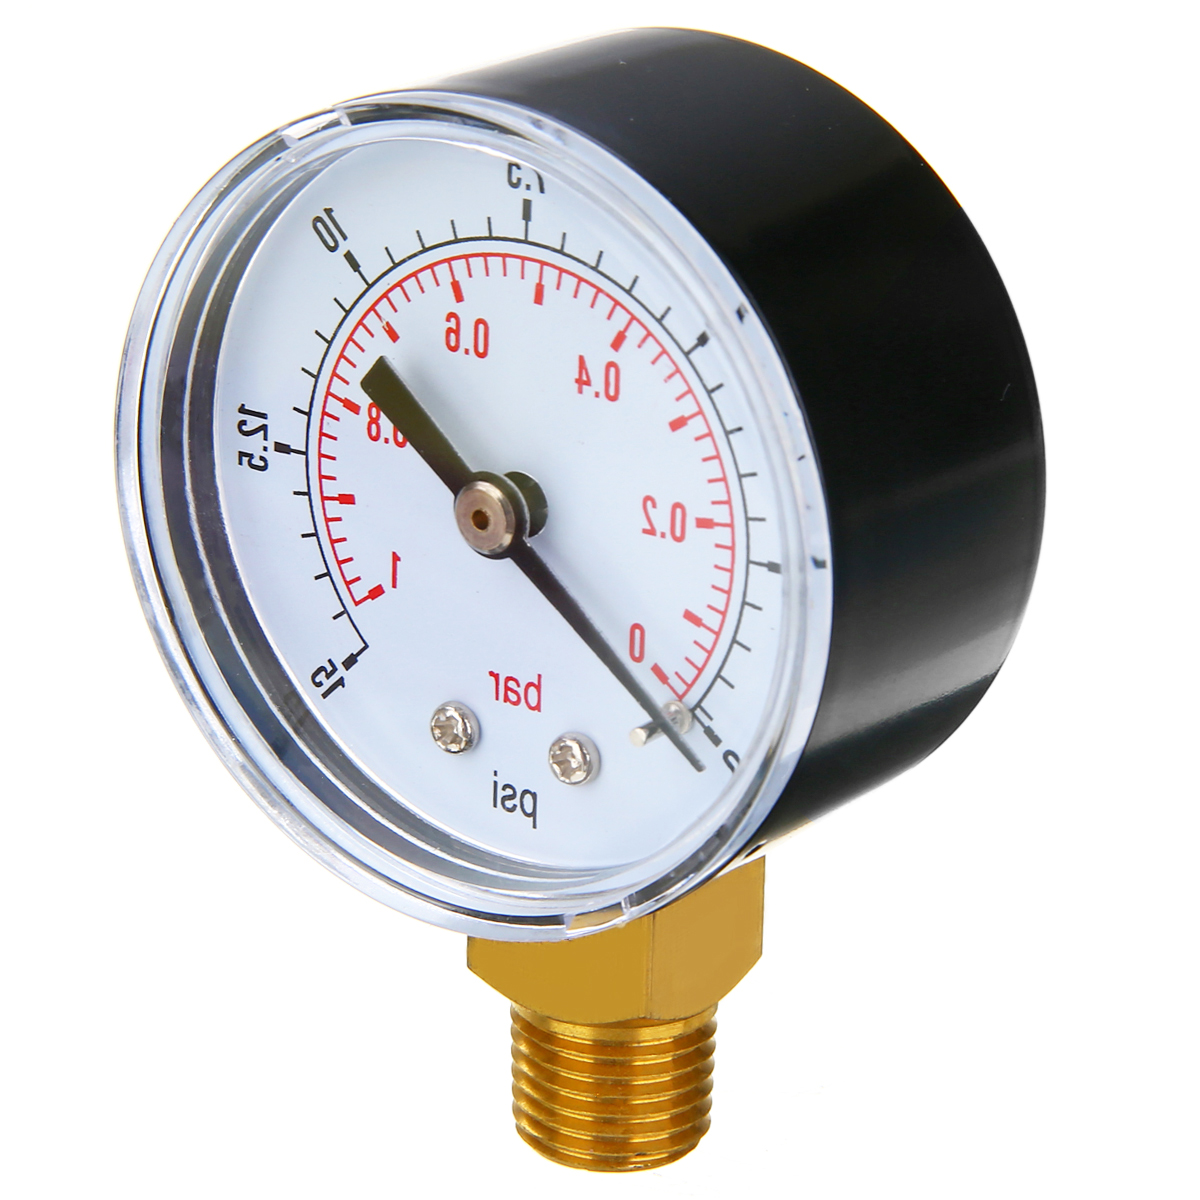 1pc 1/4 BSPT Low Pressure Gauge 50mm 0-15 PSI 0-1 Bar For Fuel Air Oil Gas Water